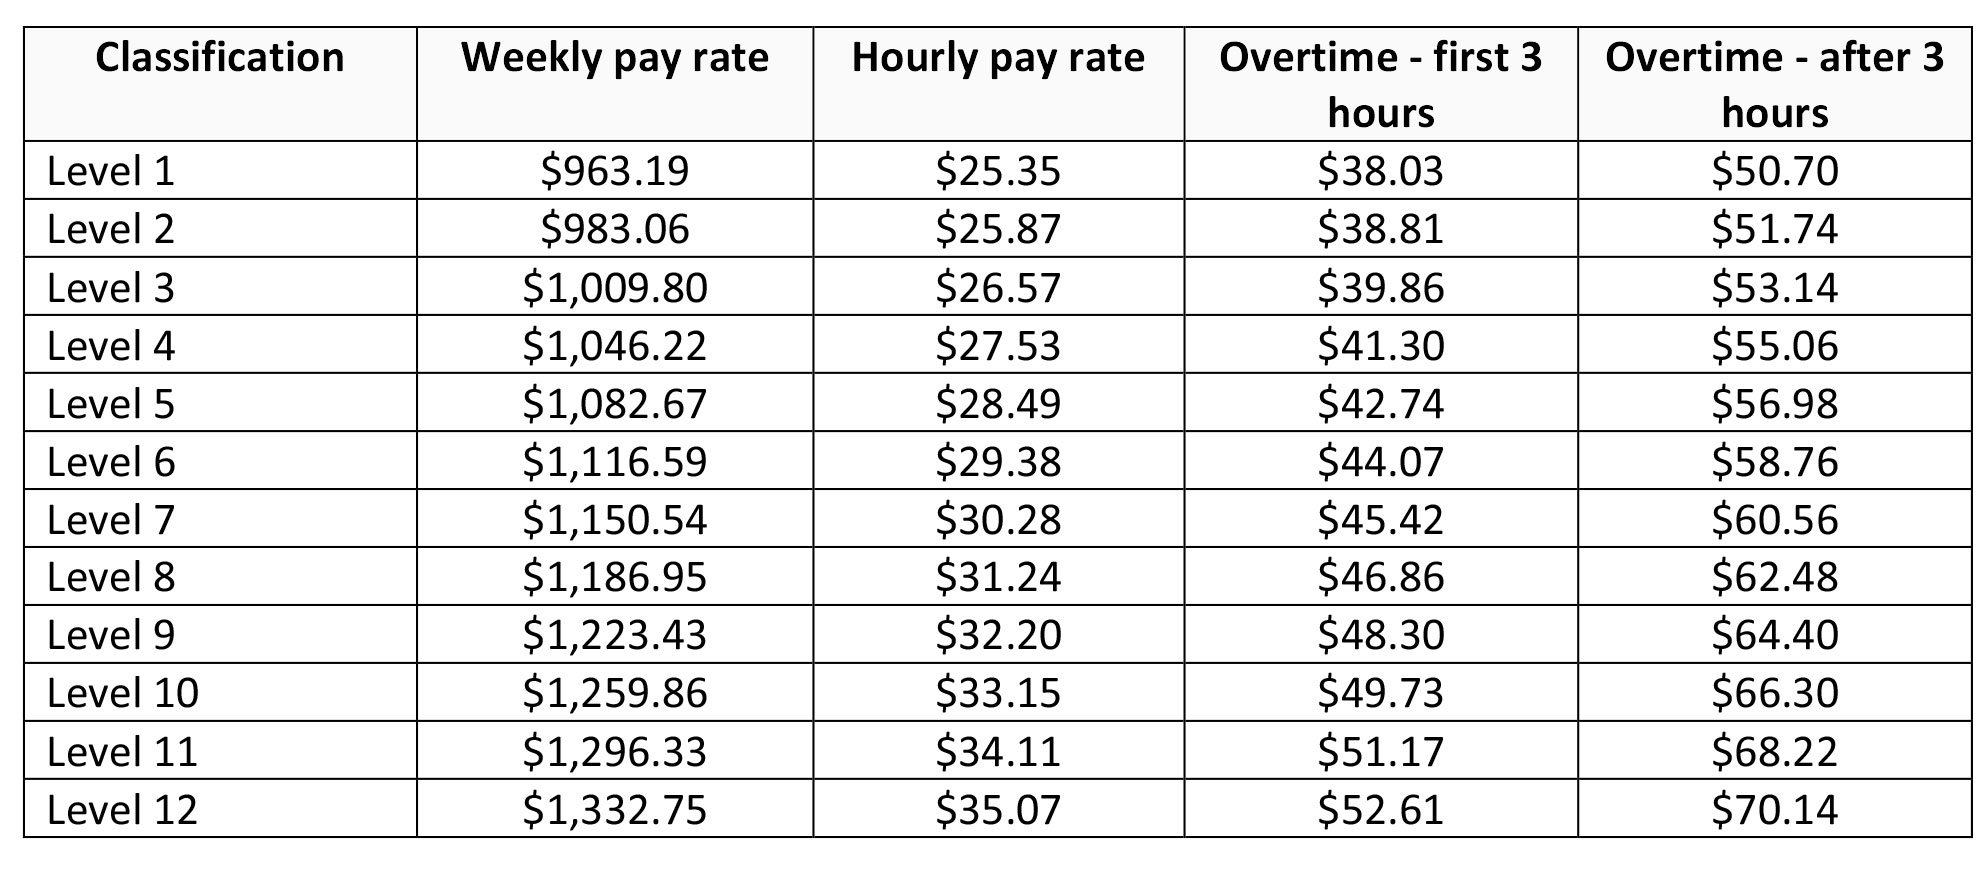 ect wage table australia